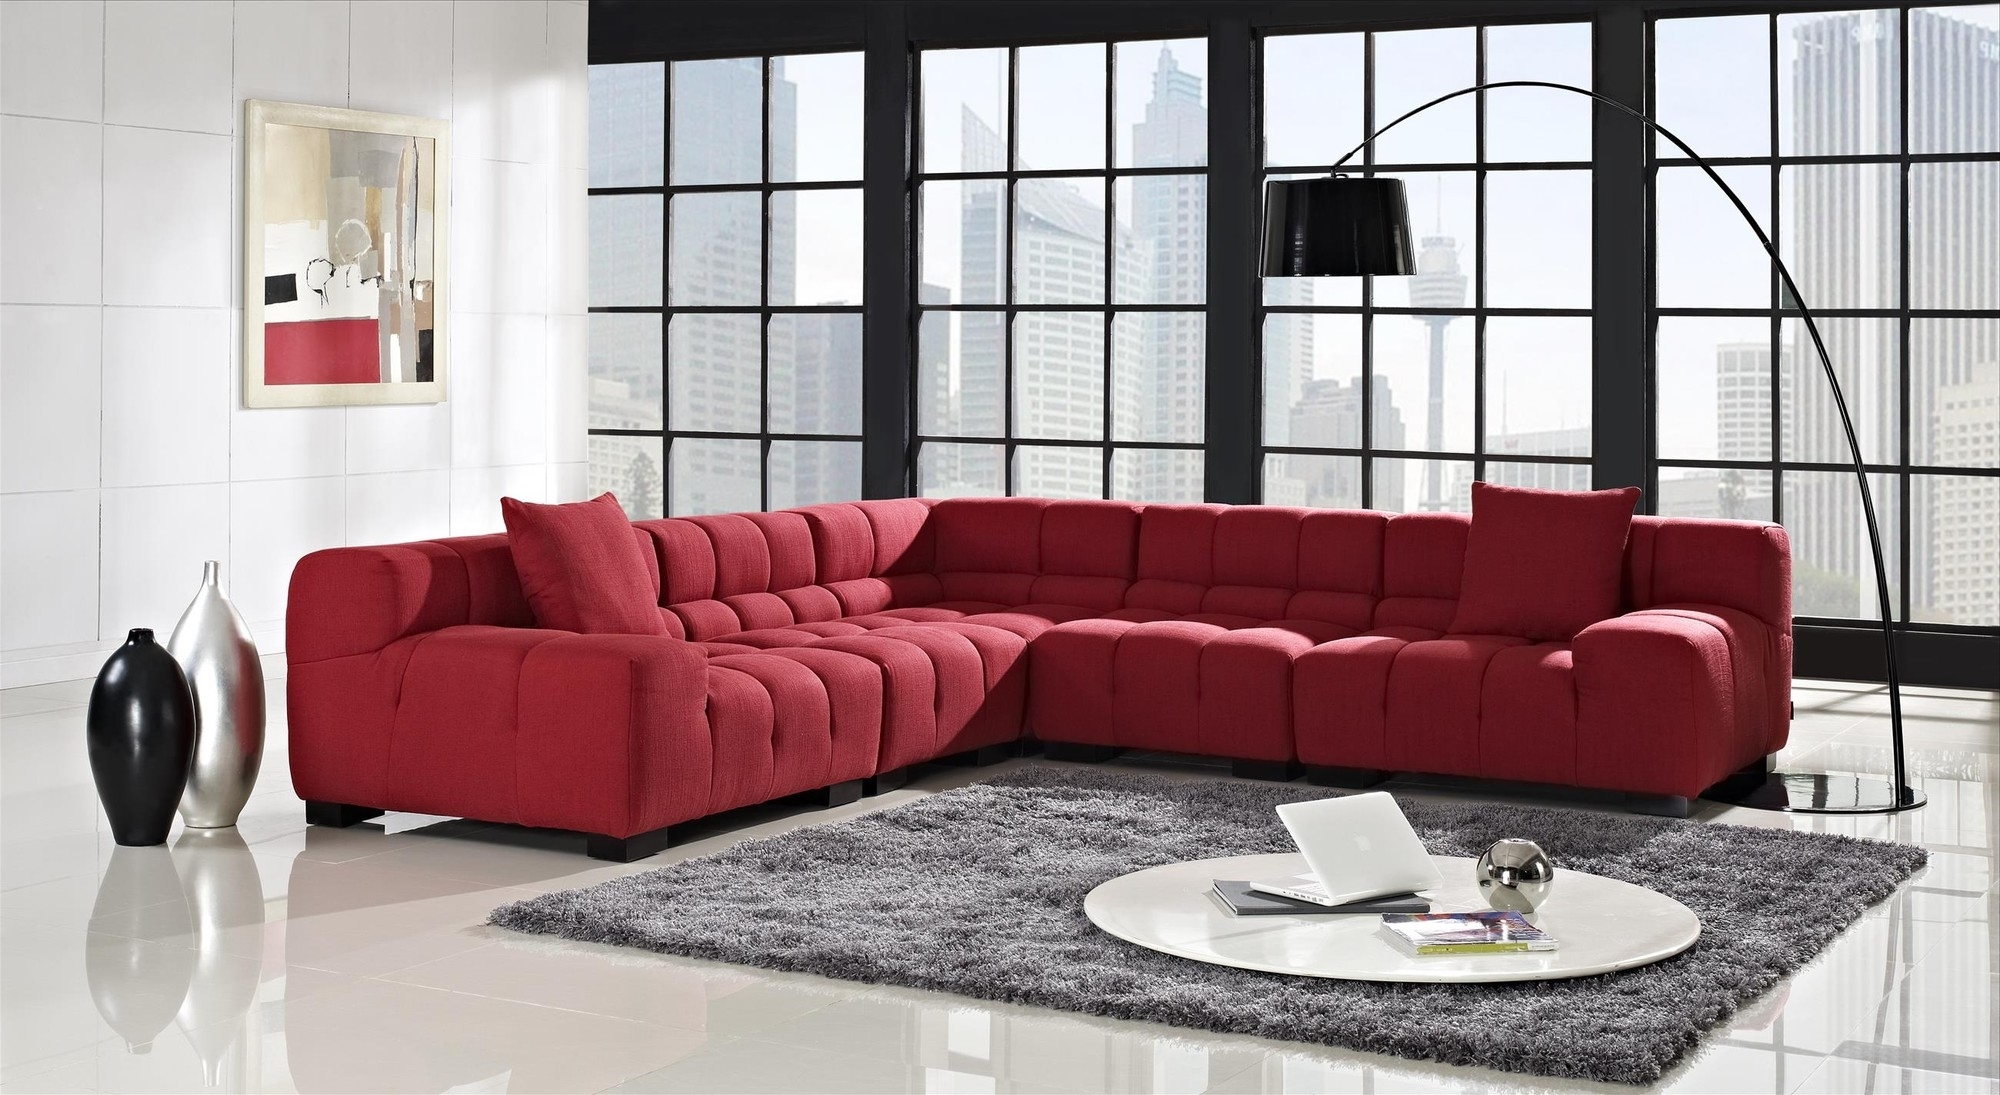 Furniture Awesome Modular Sectionals Sofas Hi Res Wallpaper Photos With Regard To Recent Small Red Leather Sectional Sofas (View 19 of 20)